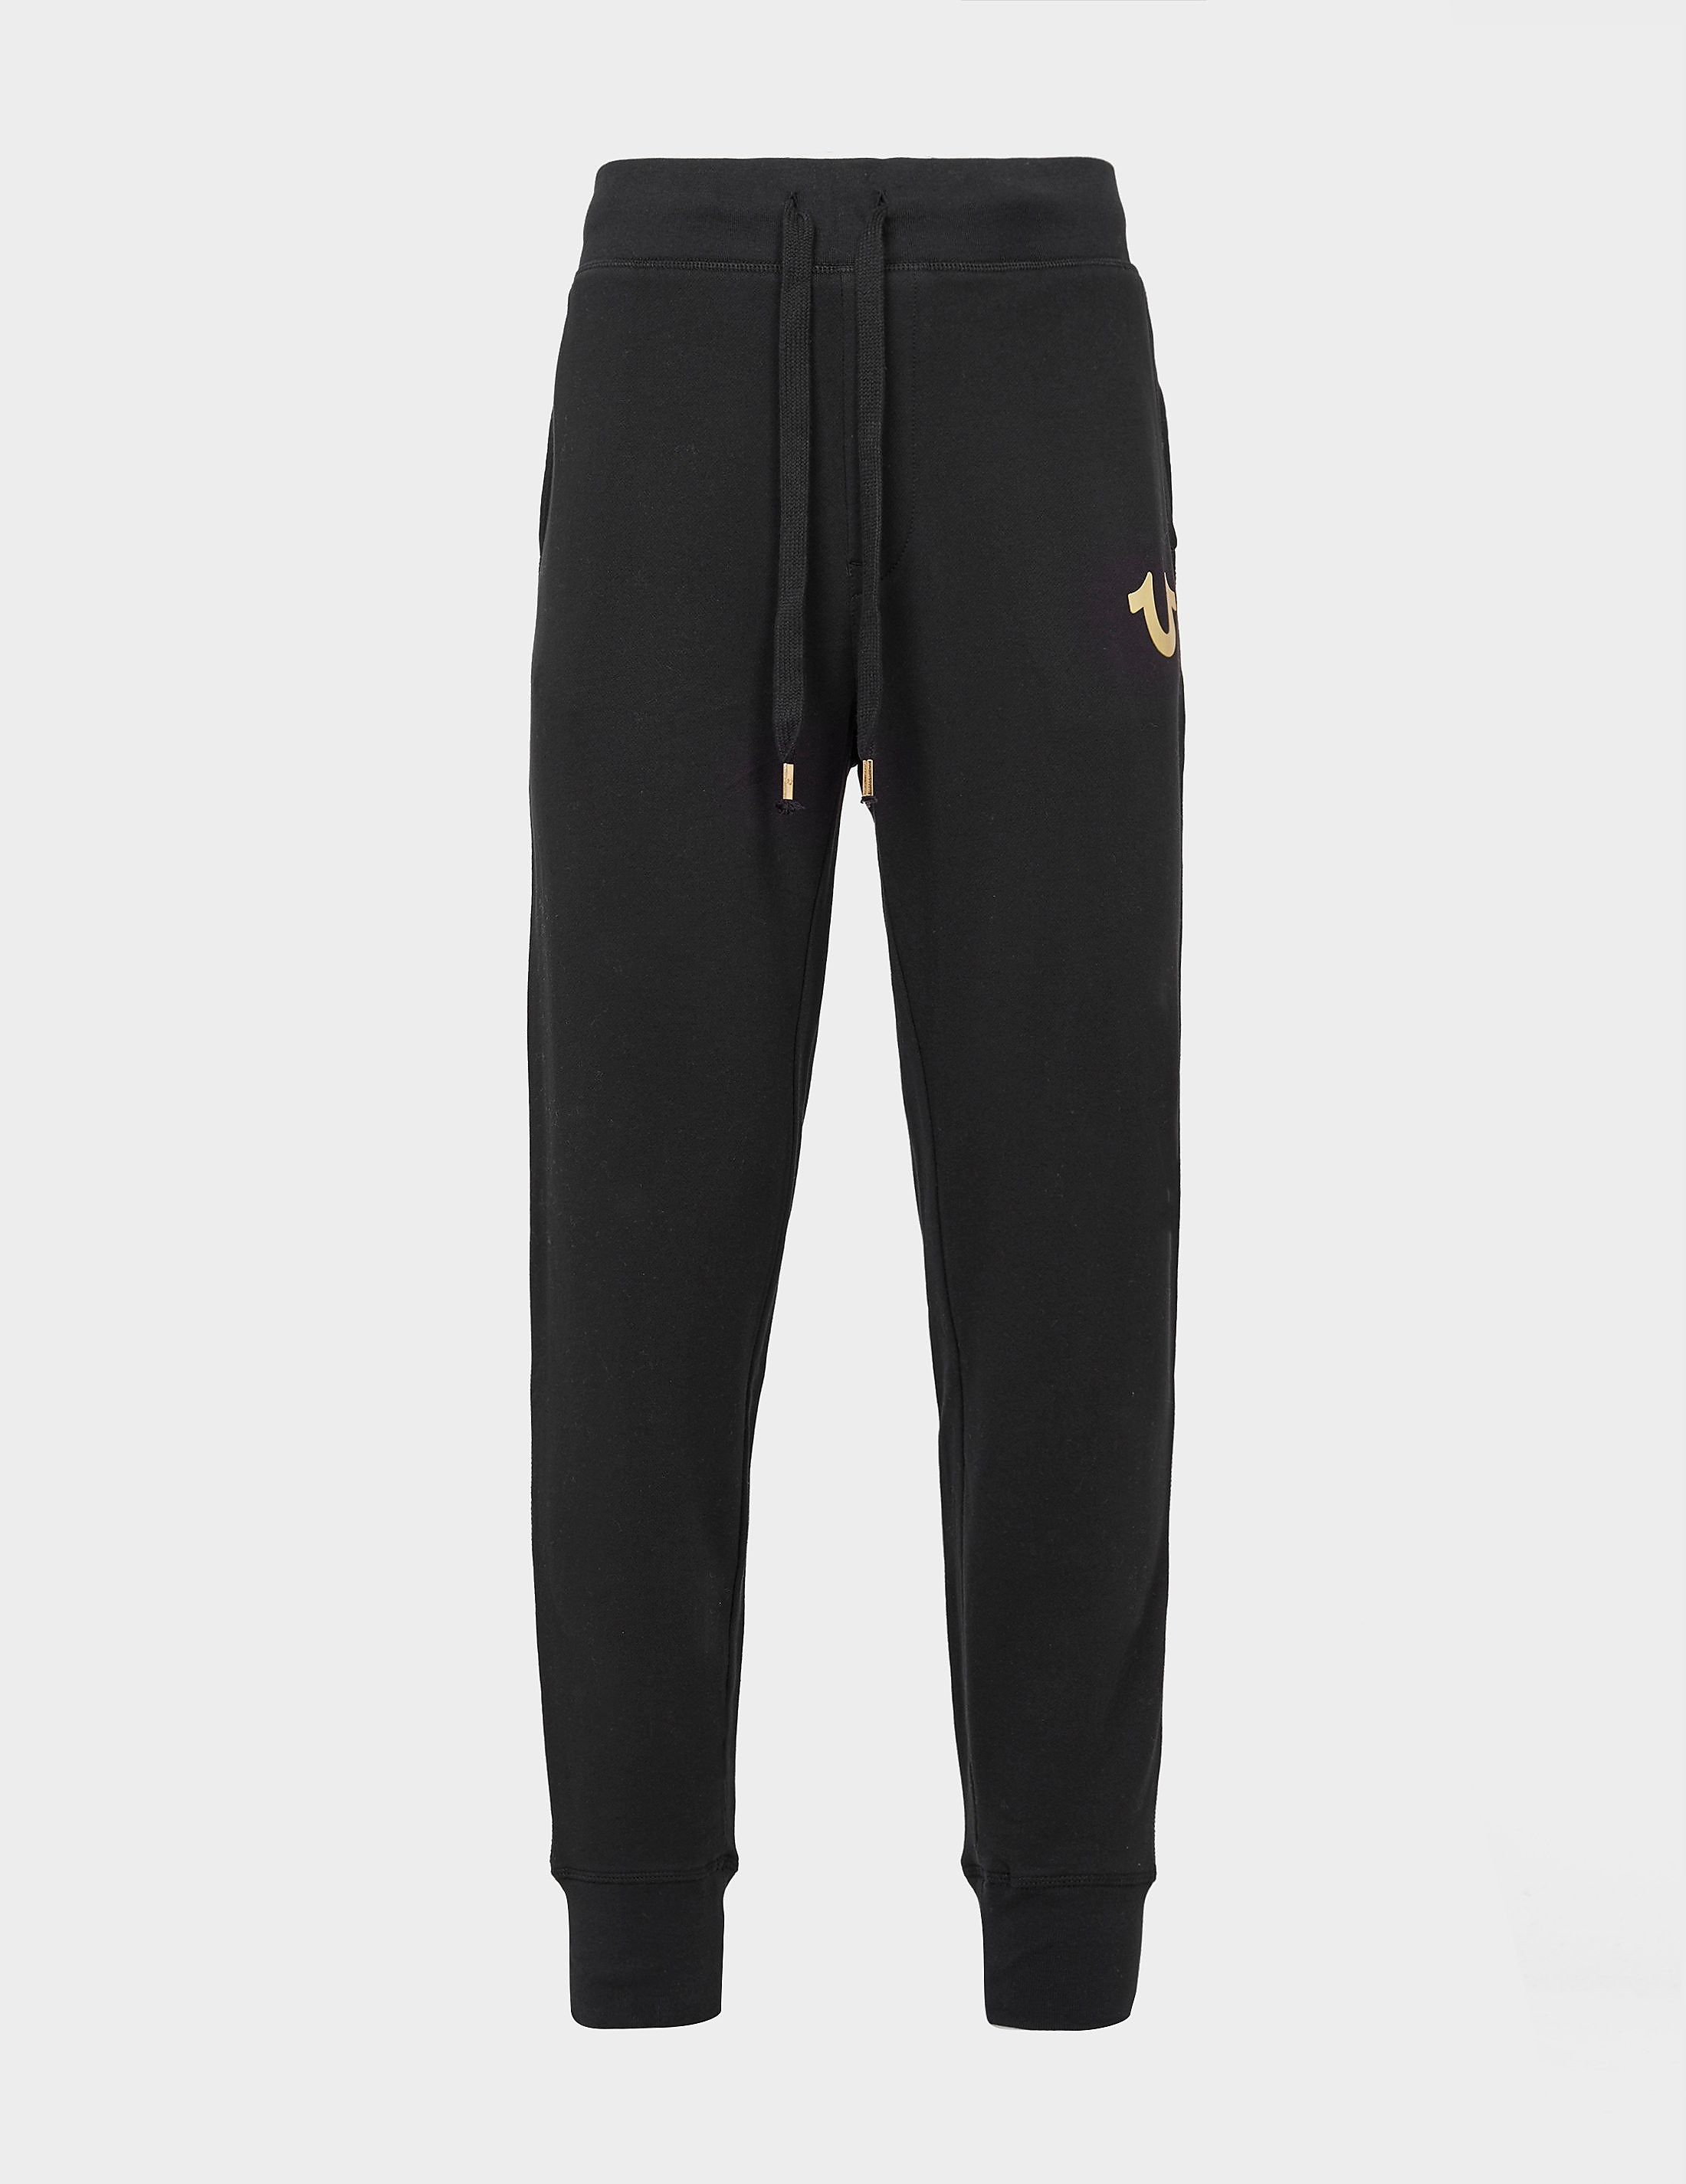 True Religion Gold Puff Cuff Track Pants